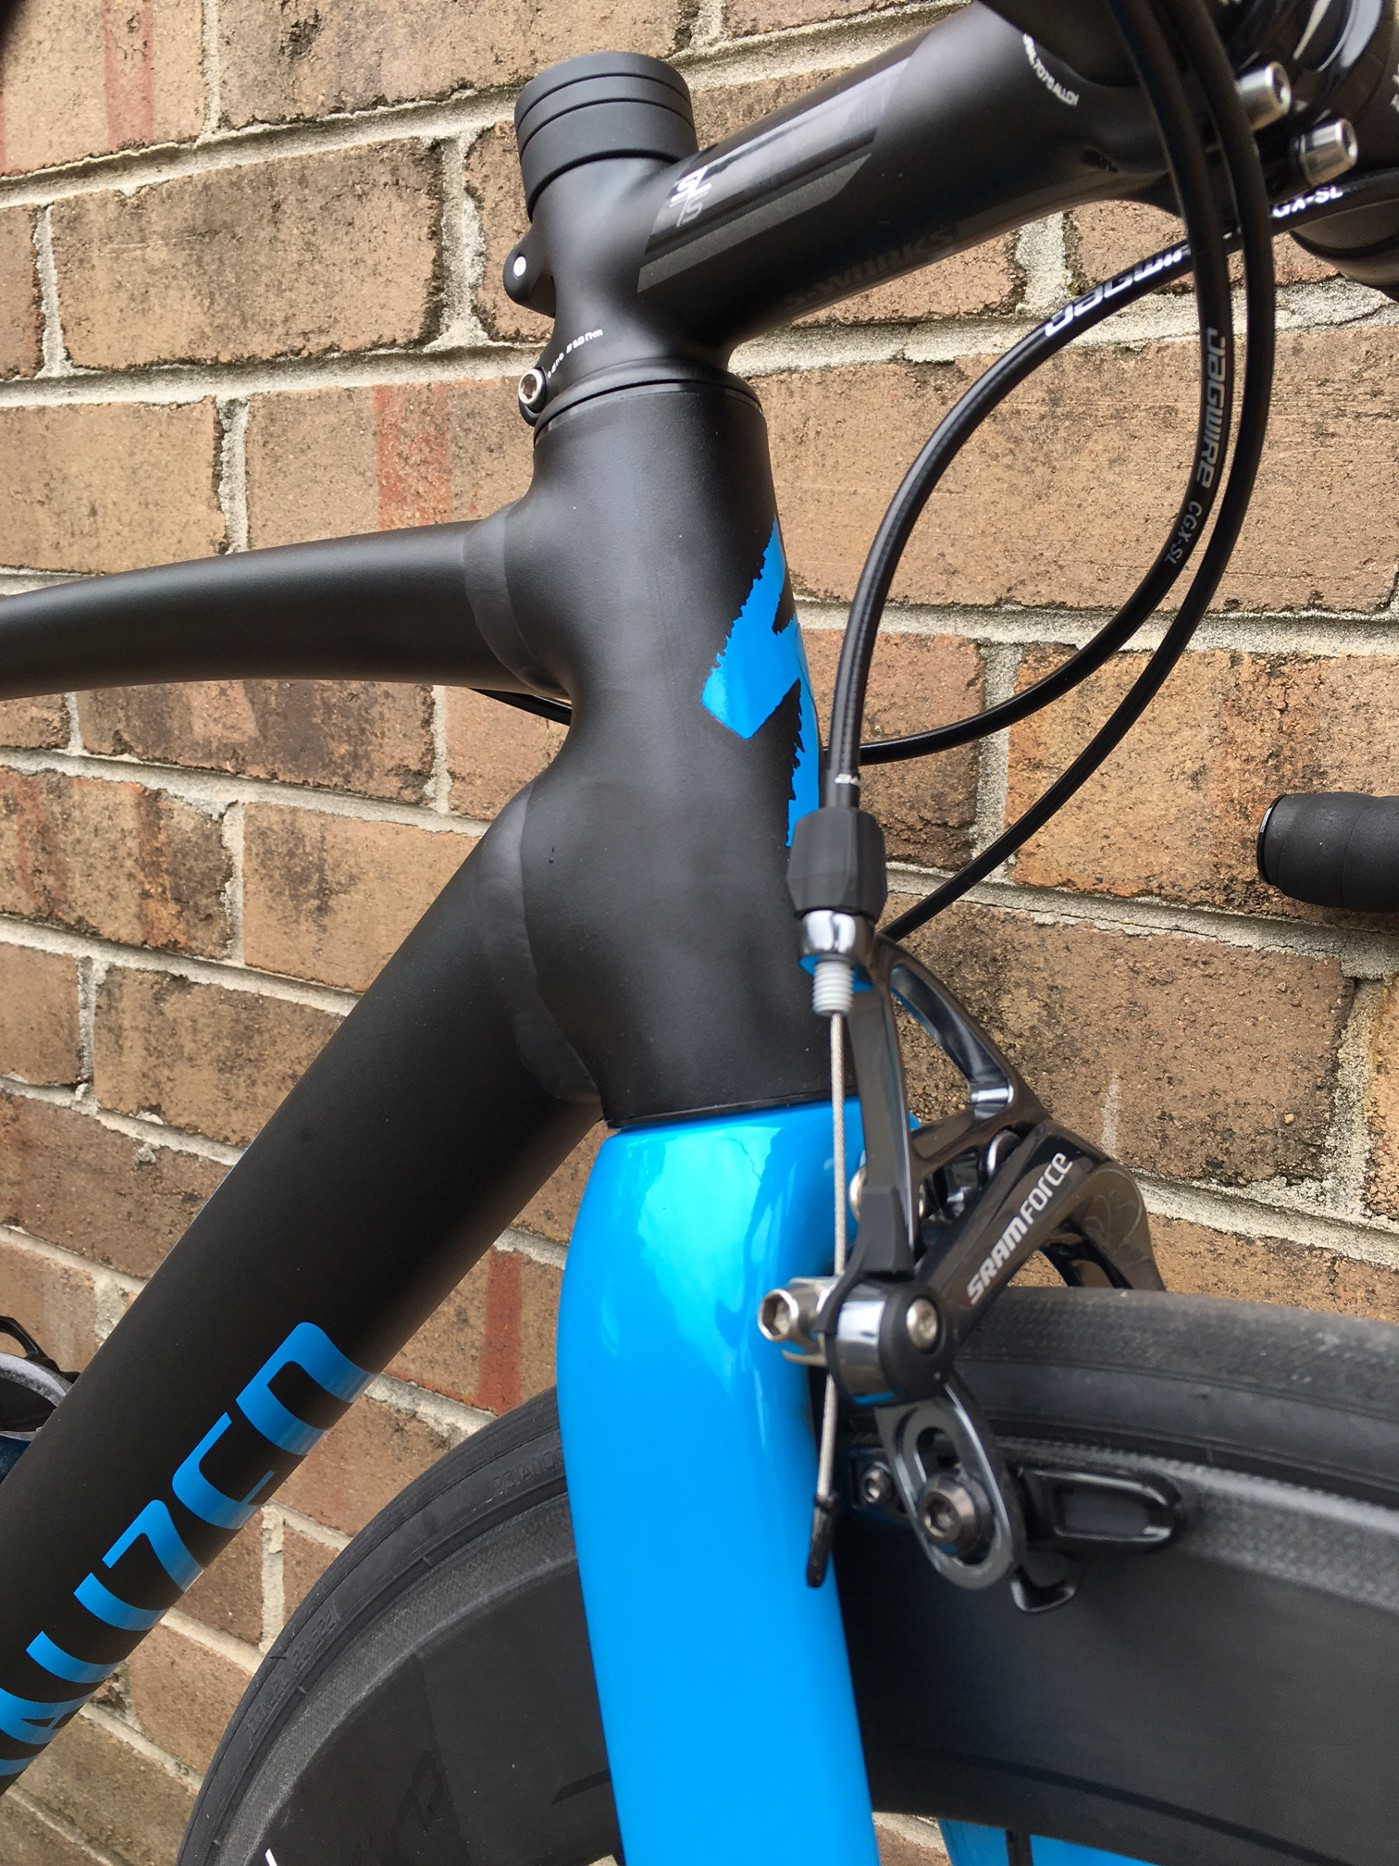 Aluminium will never die  A review of the Specialized Allez Sprint